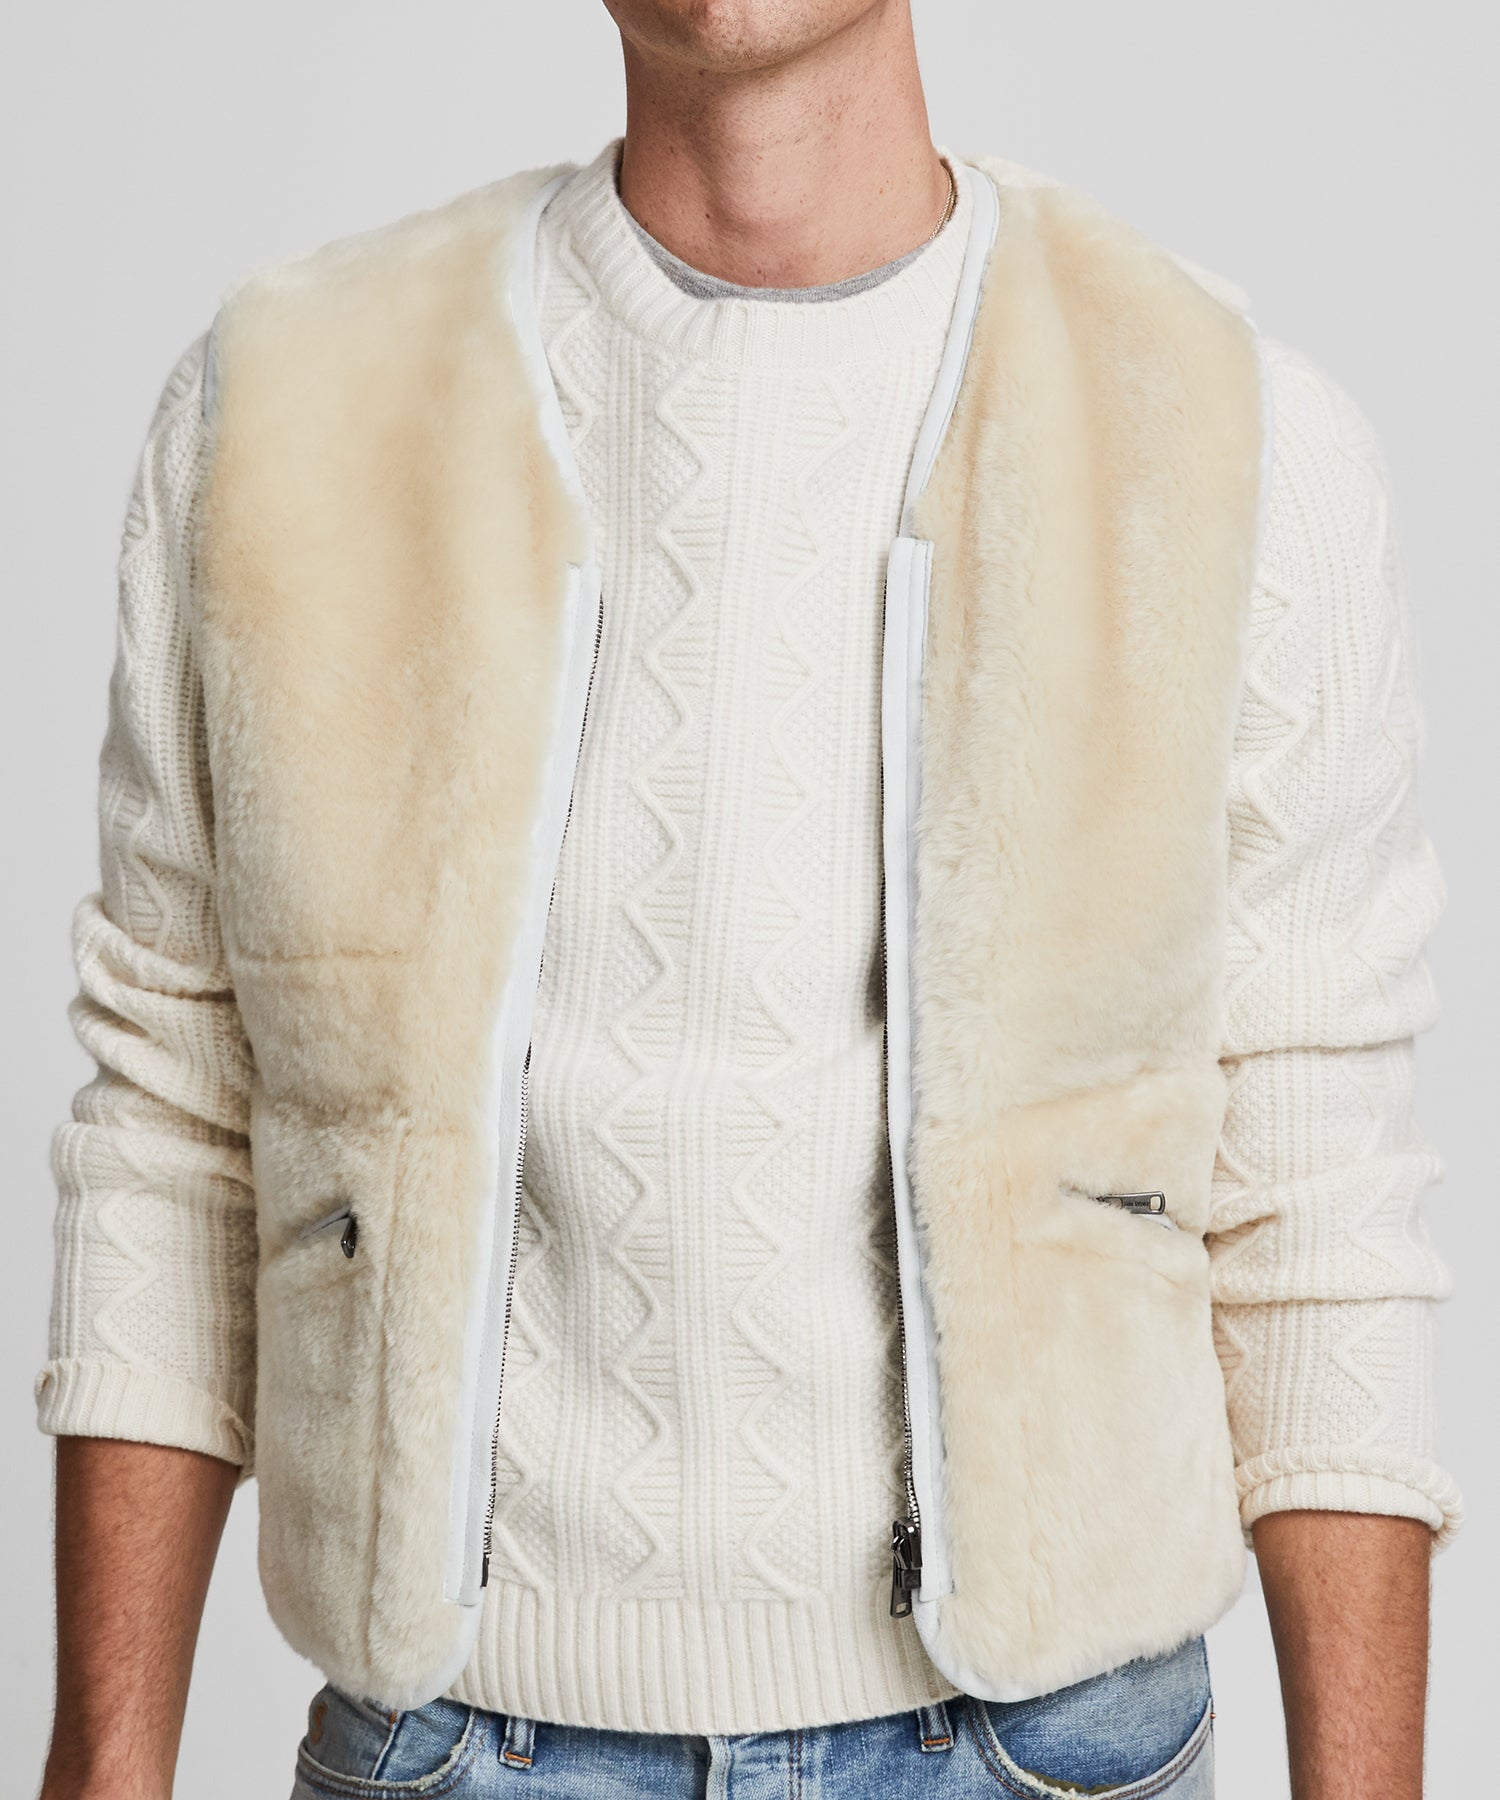 Italian Shearling Reversible Vest in White